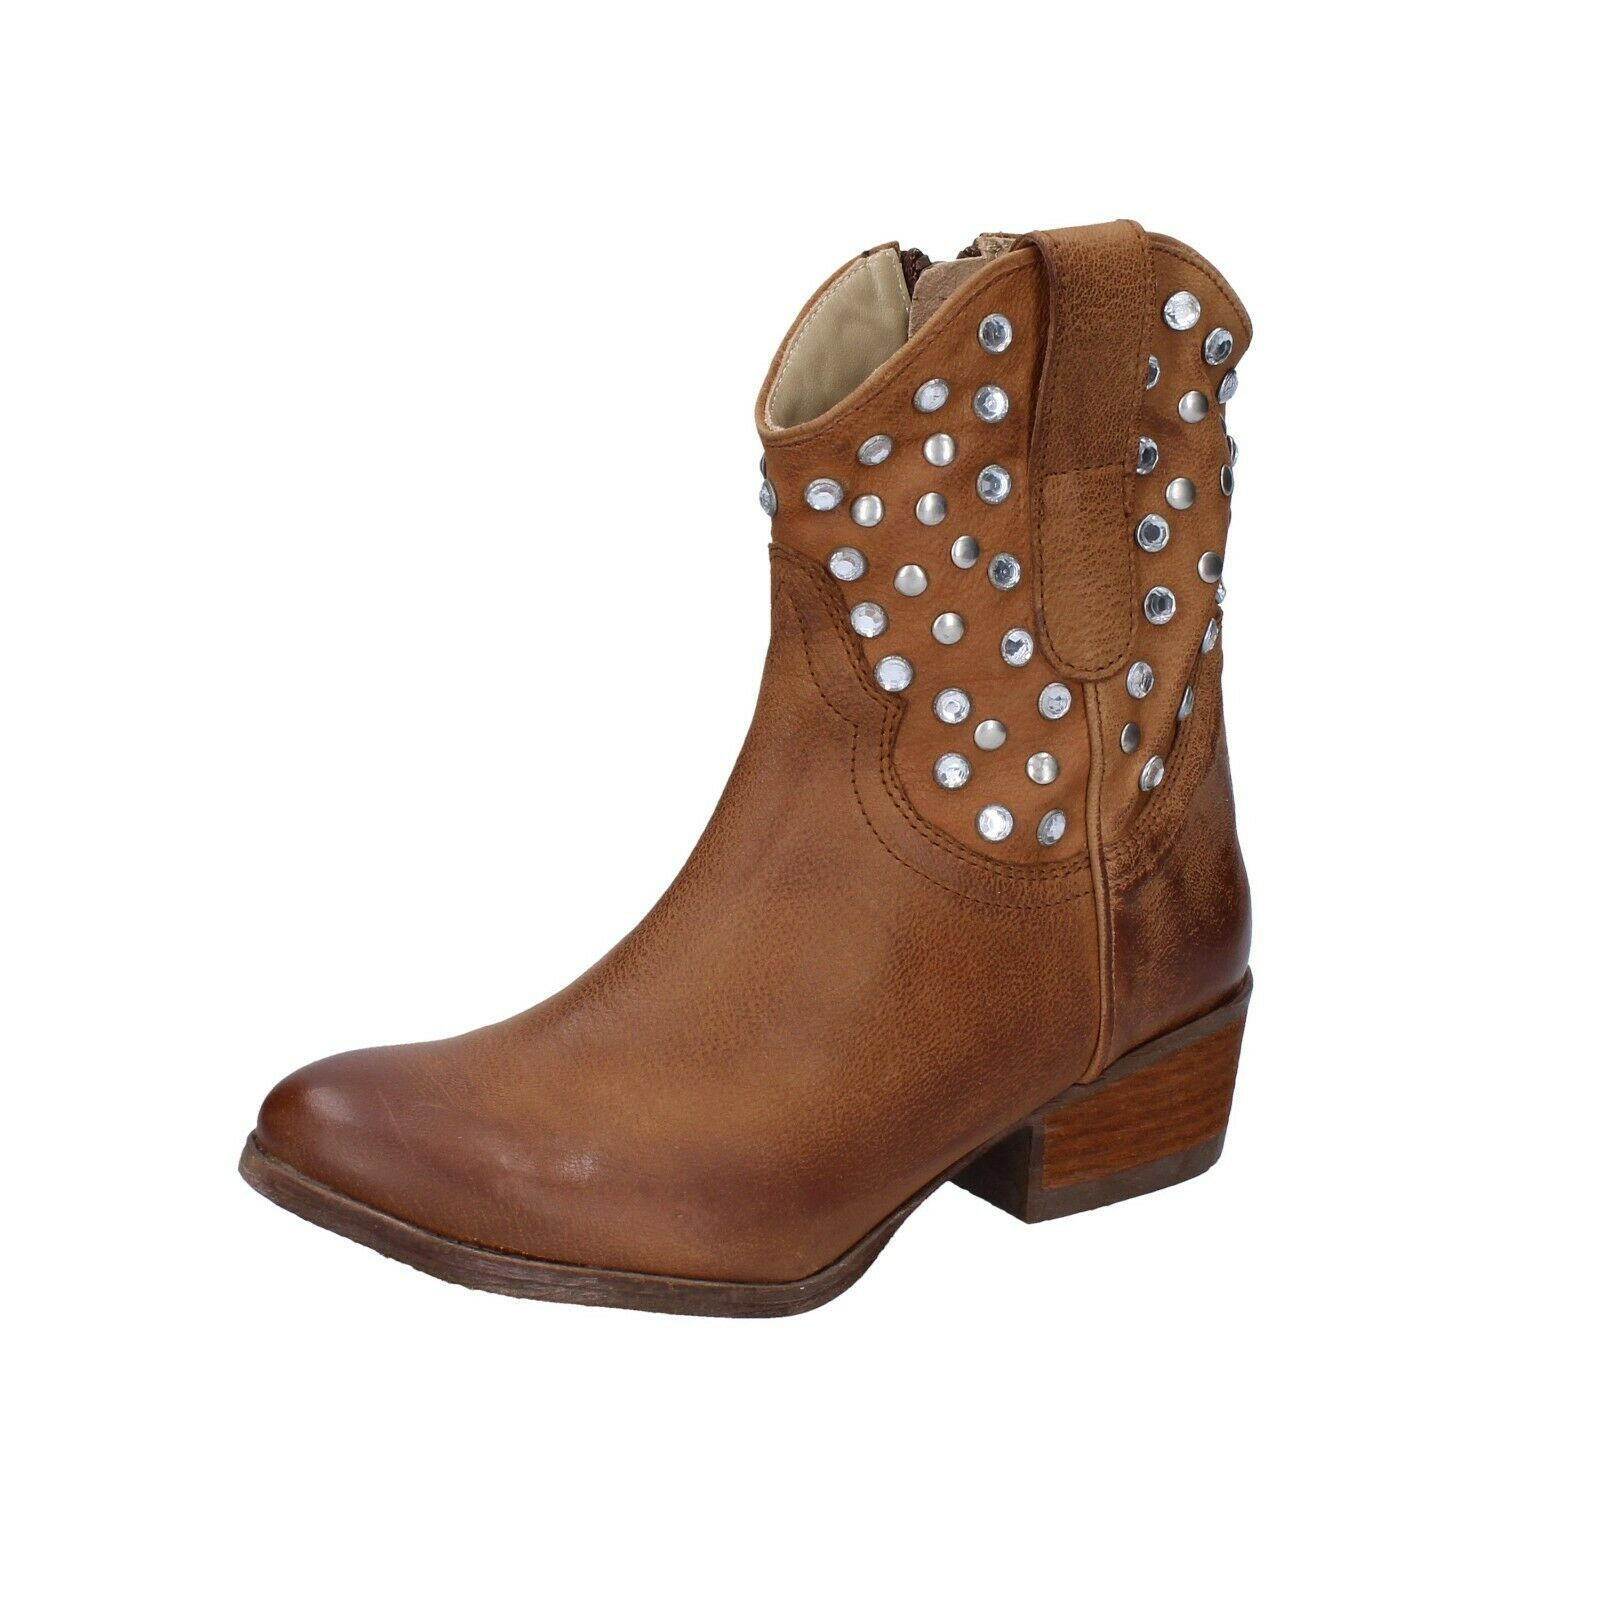 Womens shoes MANAS 3 (EU 36) ankle boots brown leather AH911-36